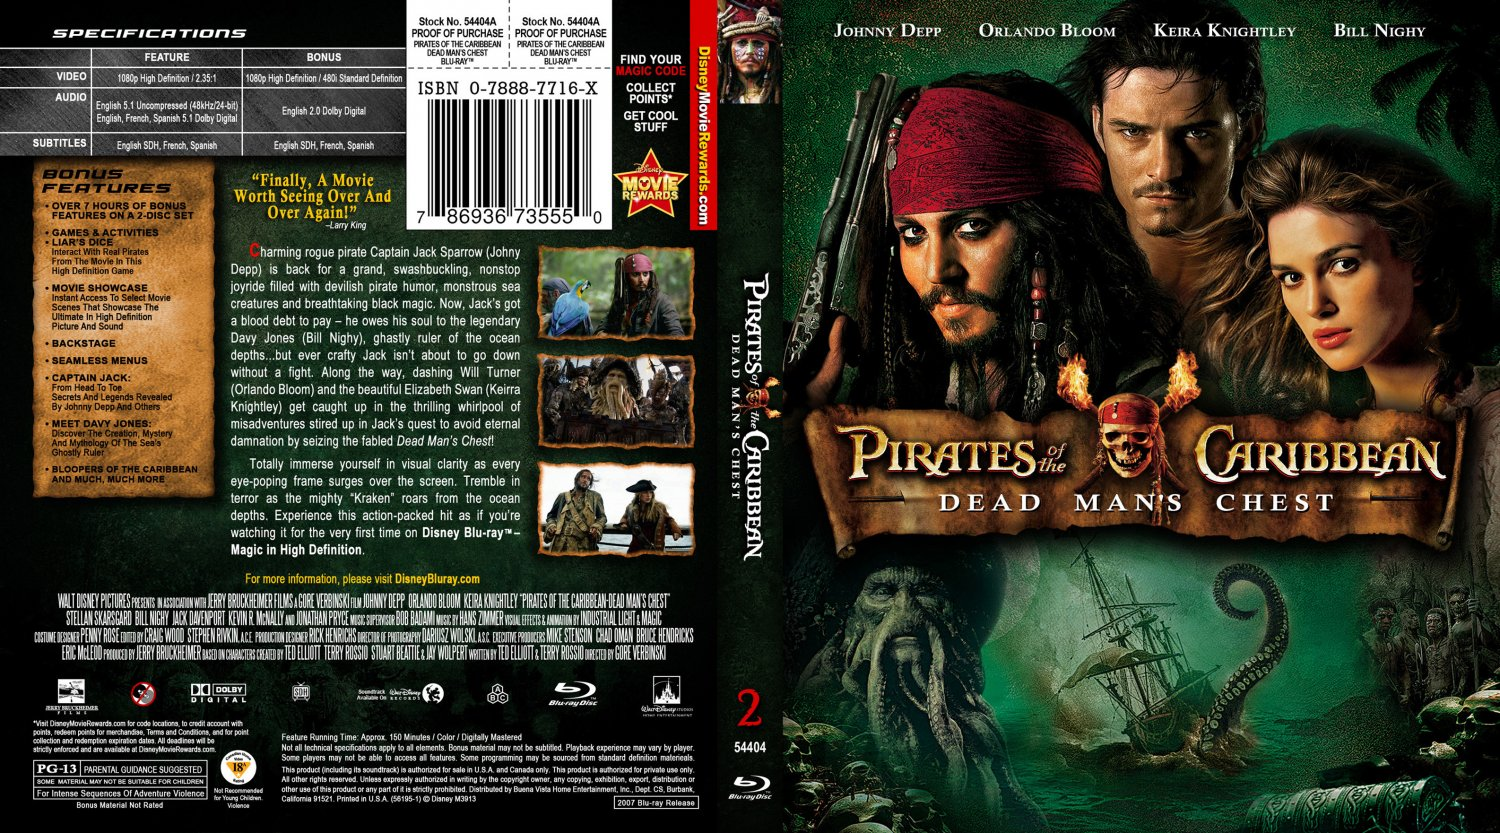 Pirates Of The Caribbean Dead Man S Chest Wallpapers Movie Hq Pirates Of The Caribbean Dead Man S Chest Pictures 4k Wallpapers 2019